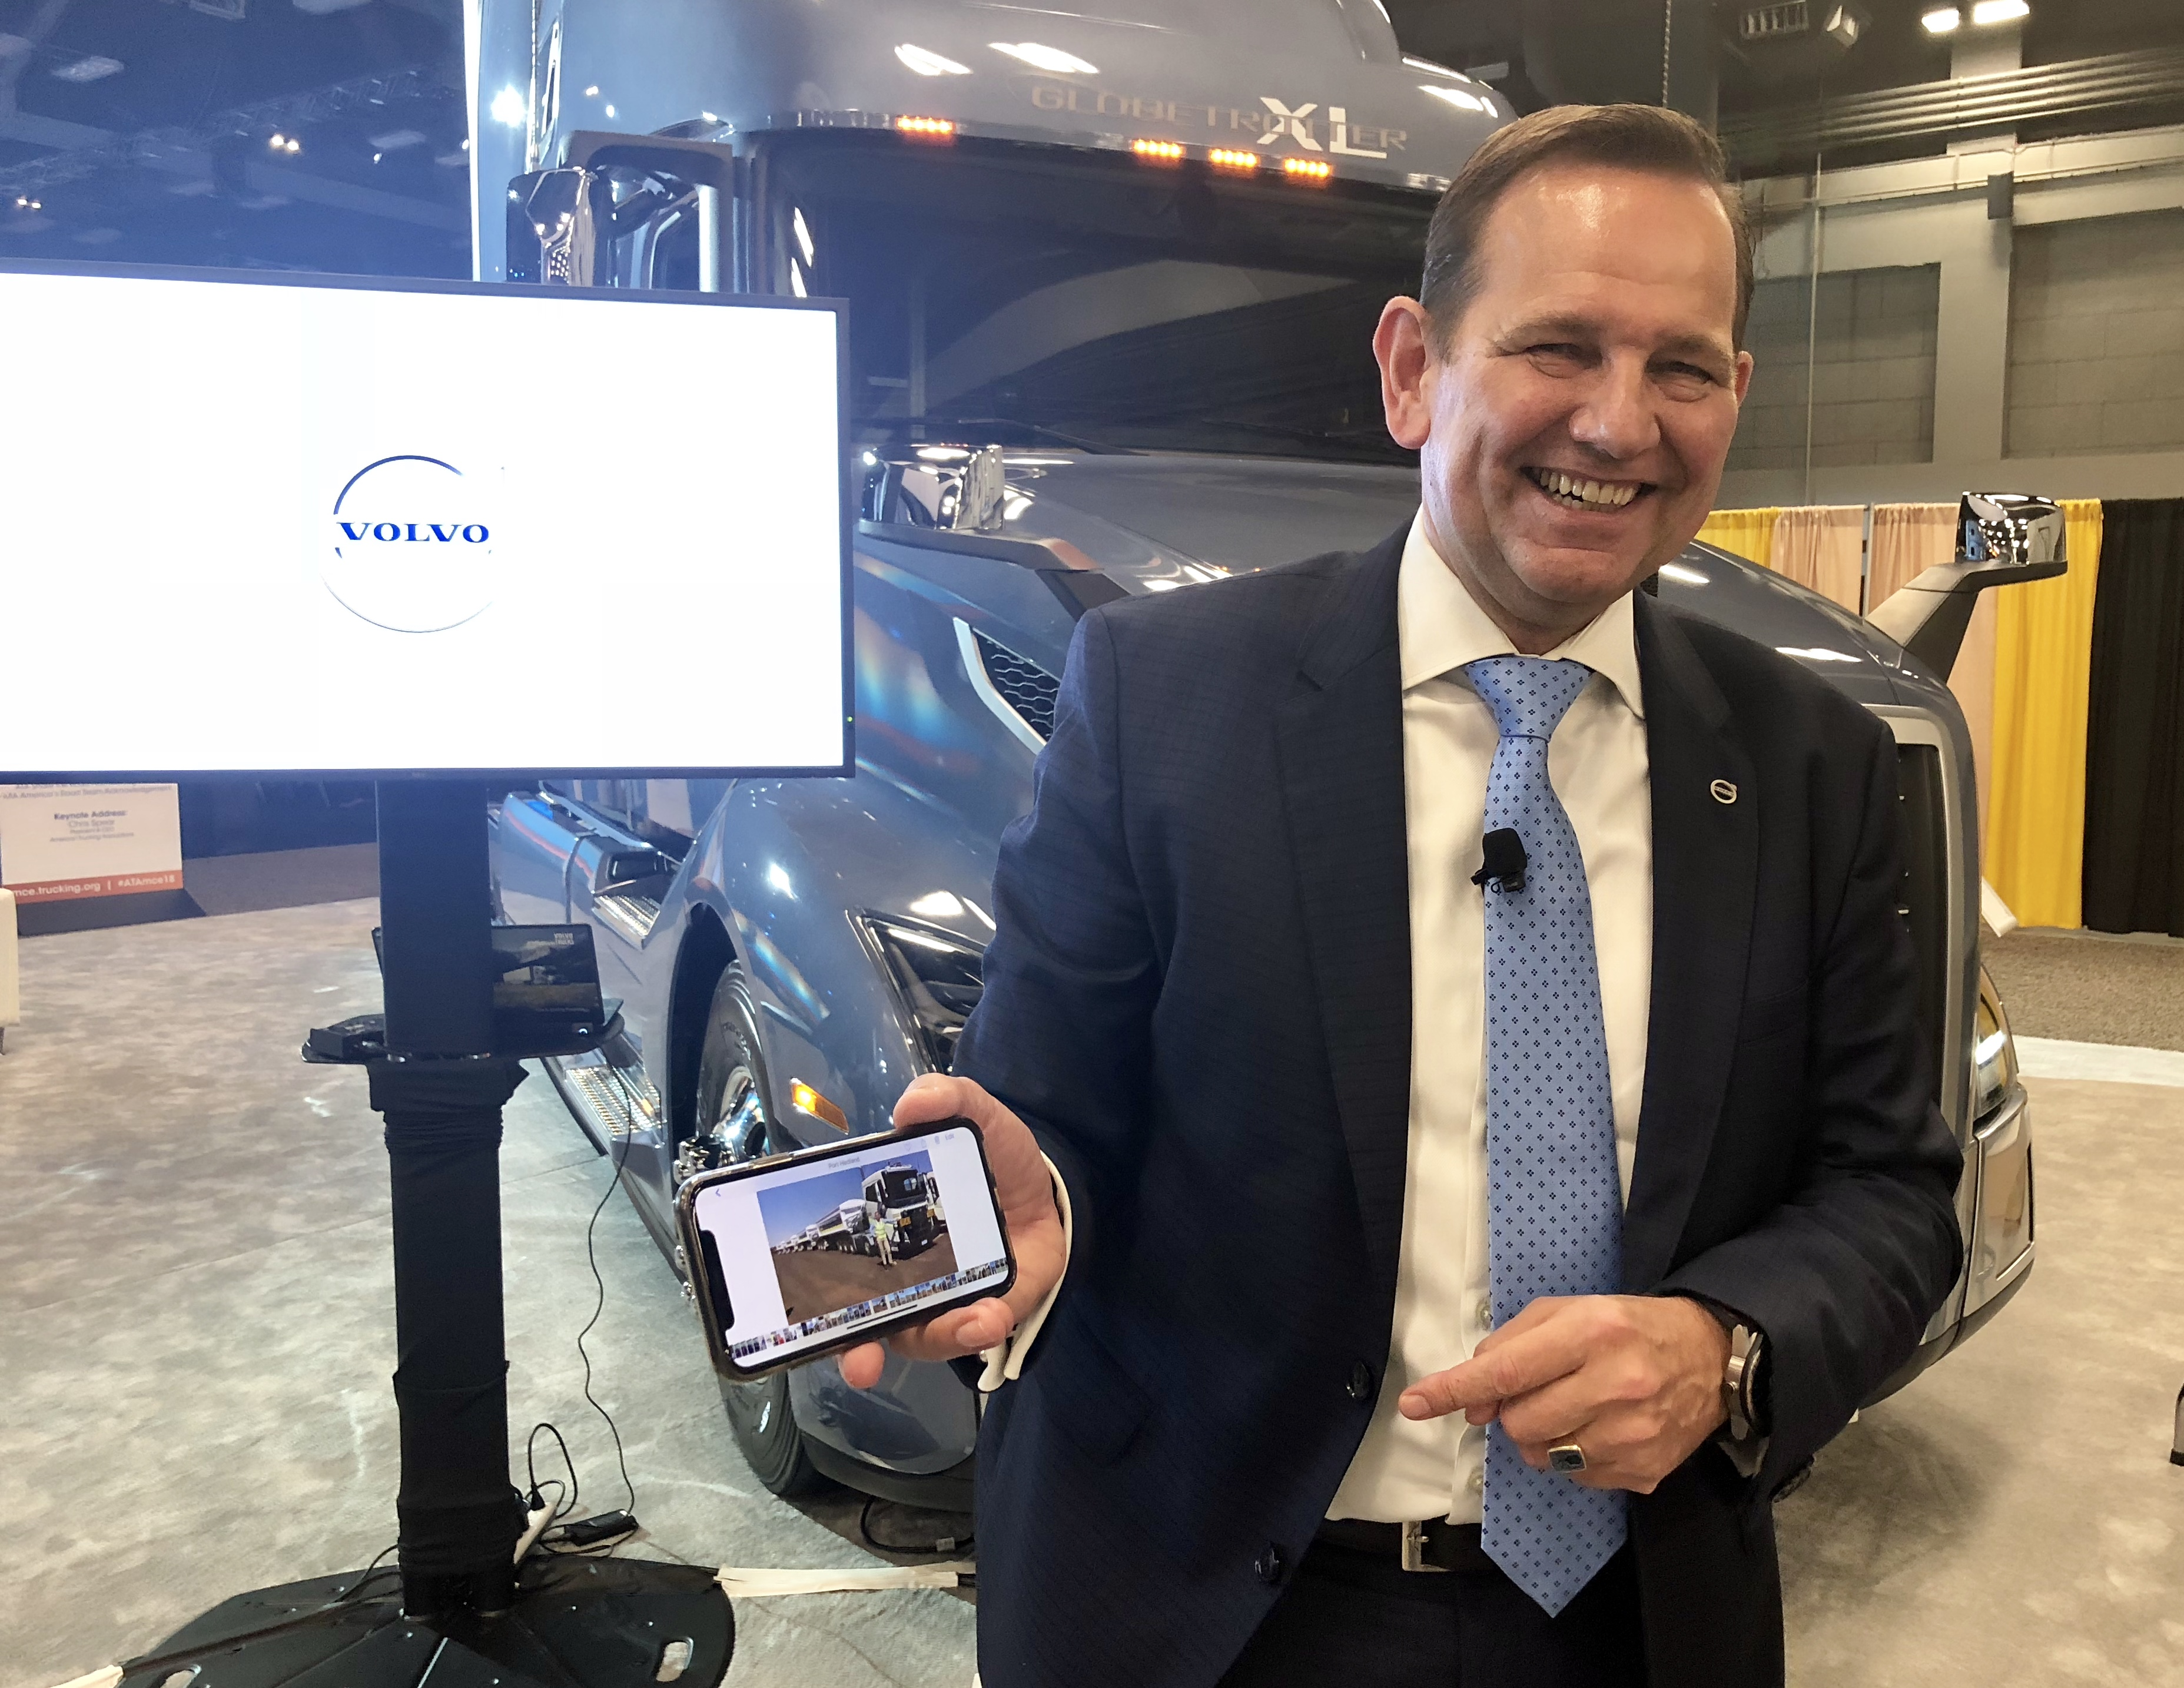 Volvo Trucks' Voorhoeve: Trucking in Throes of 'Exciting Times' - Fleet Management - Trucking Info